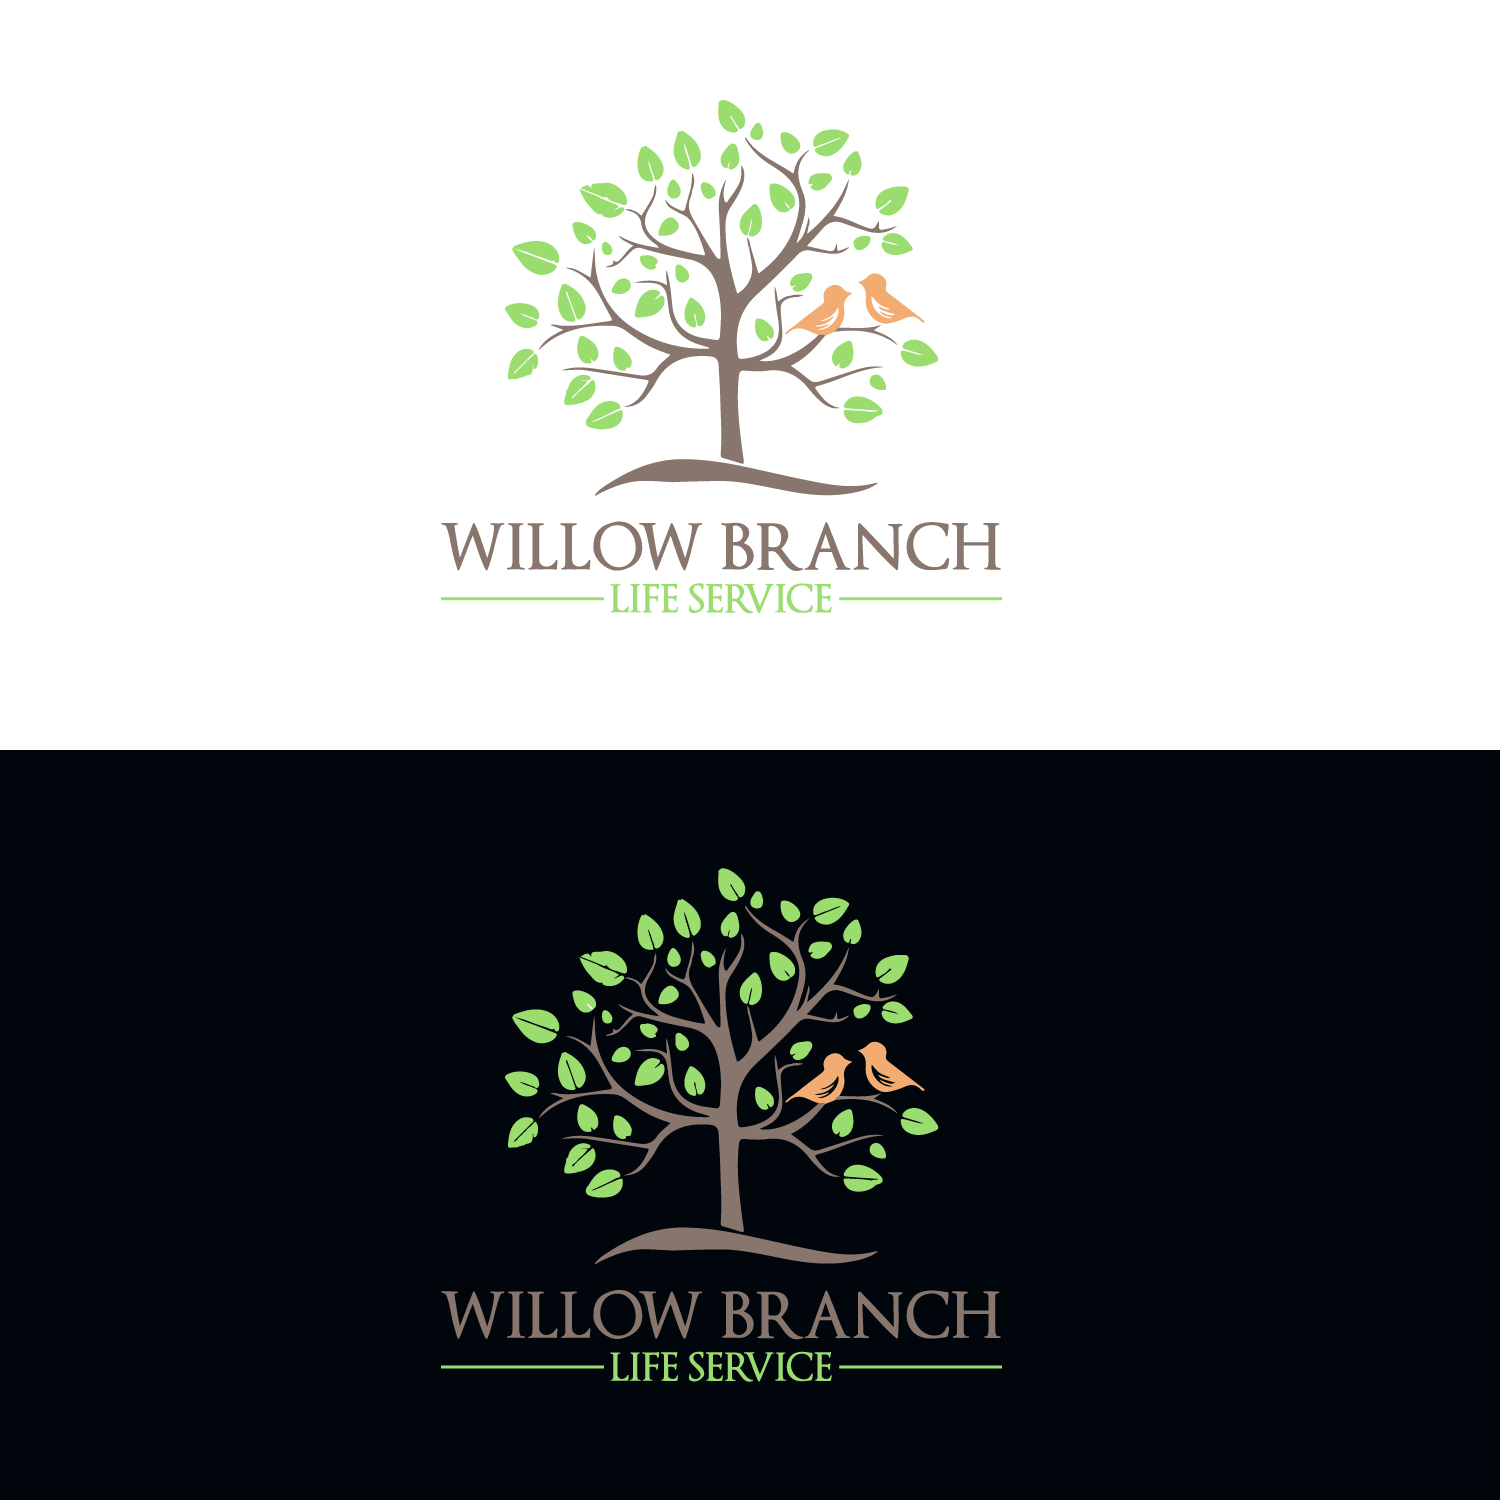 Logo Design by Badal Hossain - Entry No. 266 in the Logo Design Contest Artistic Logo Design for Willow Branch Life Service.